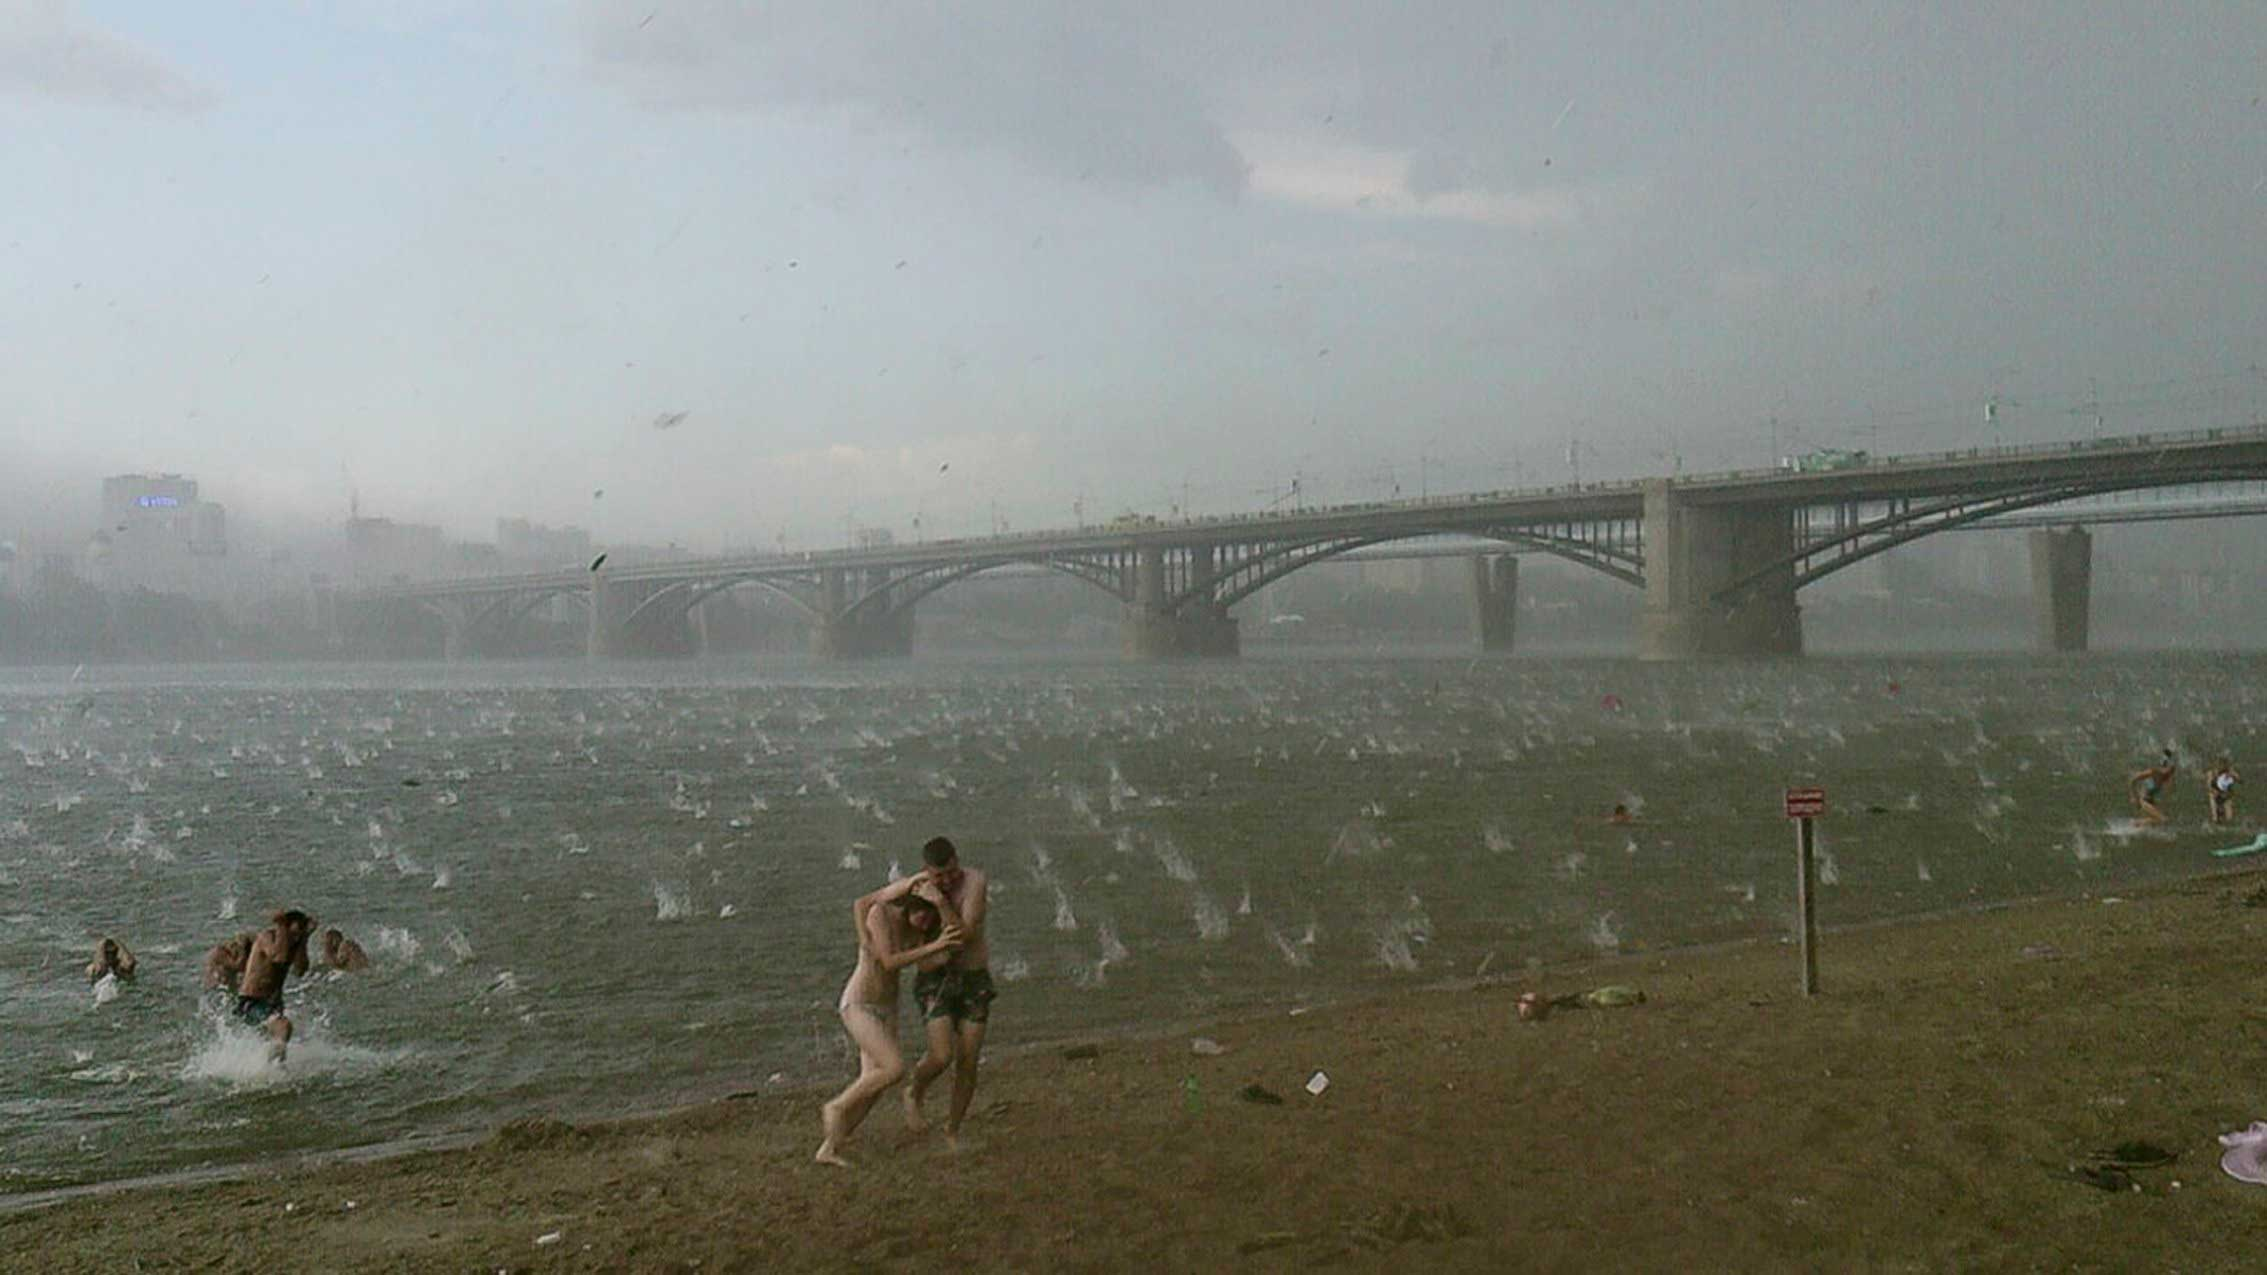 People run to shelter from hailstorm on the beach at Ob River, Novosibirsk, Russia, July 12, 2014.